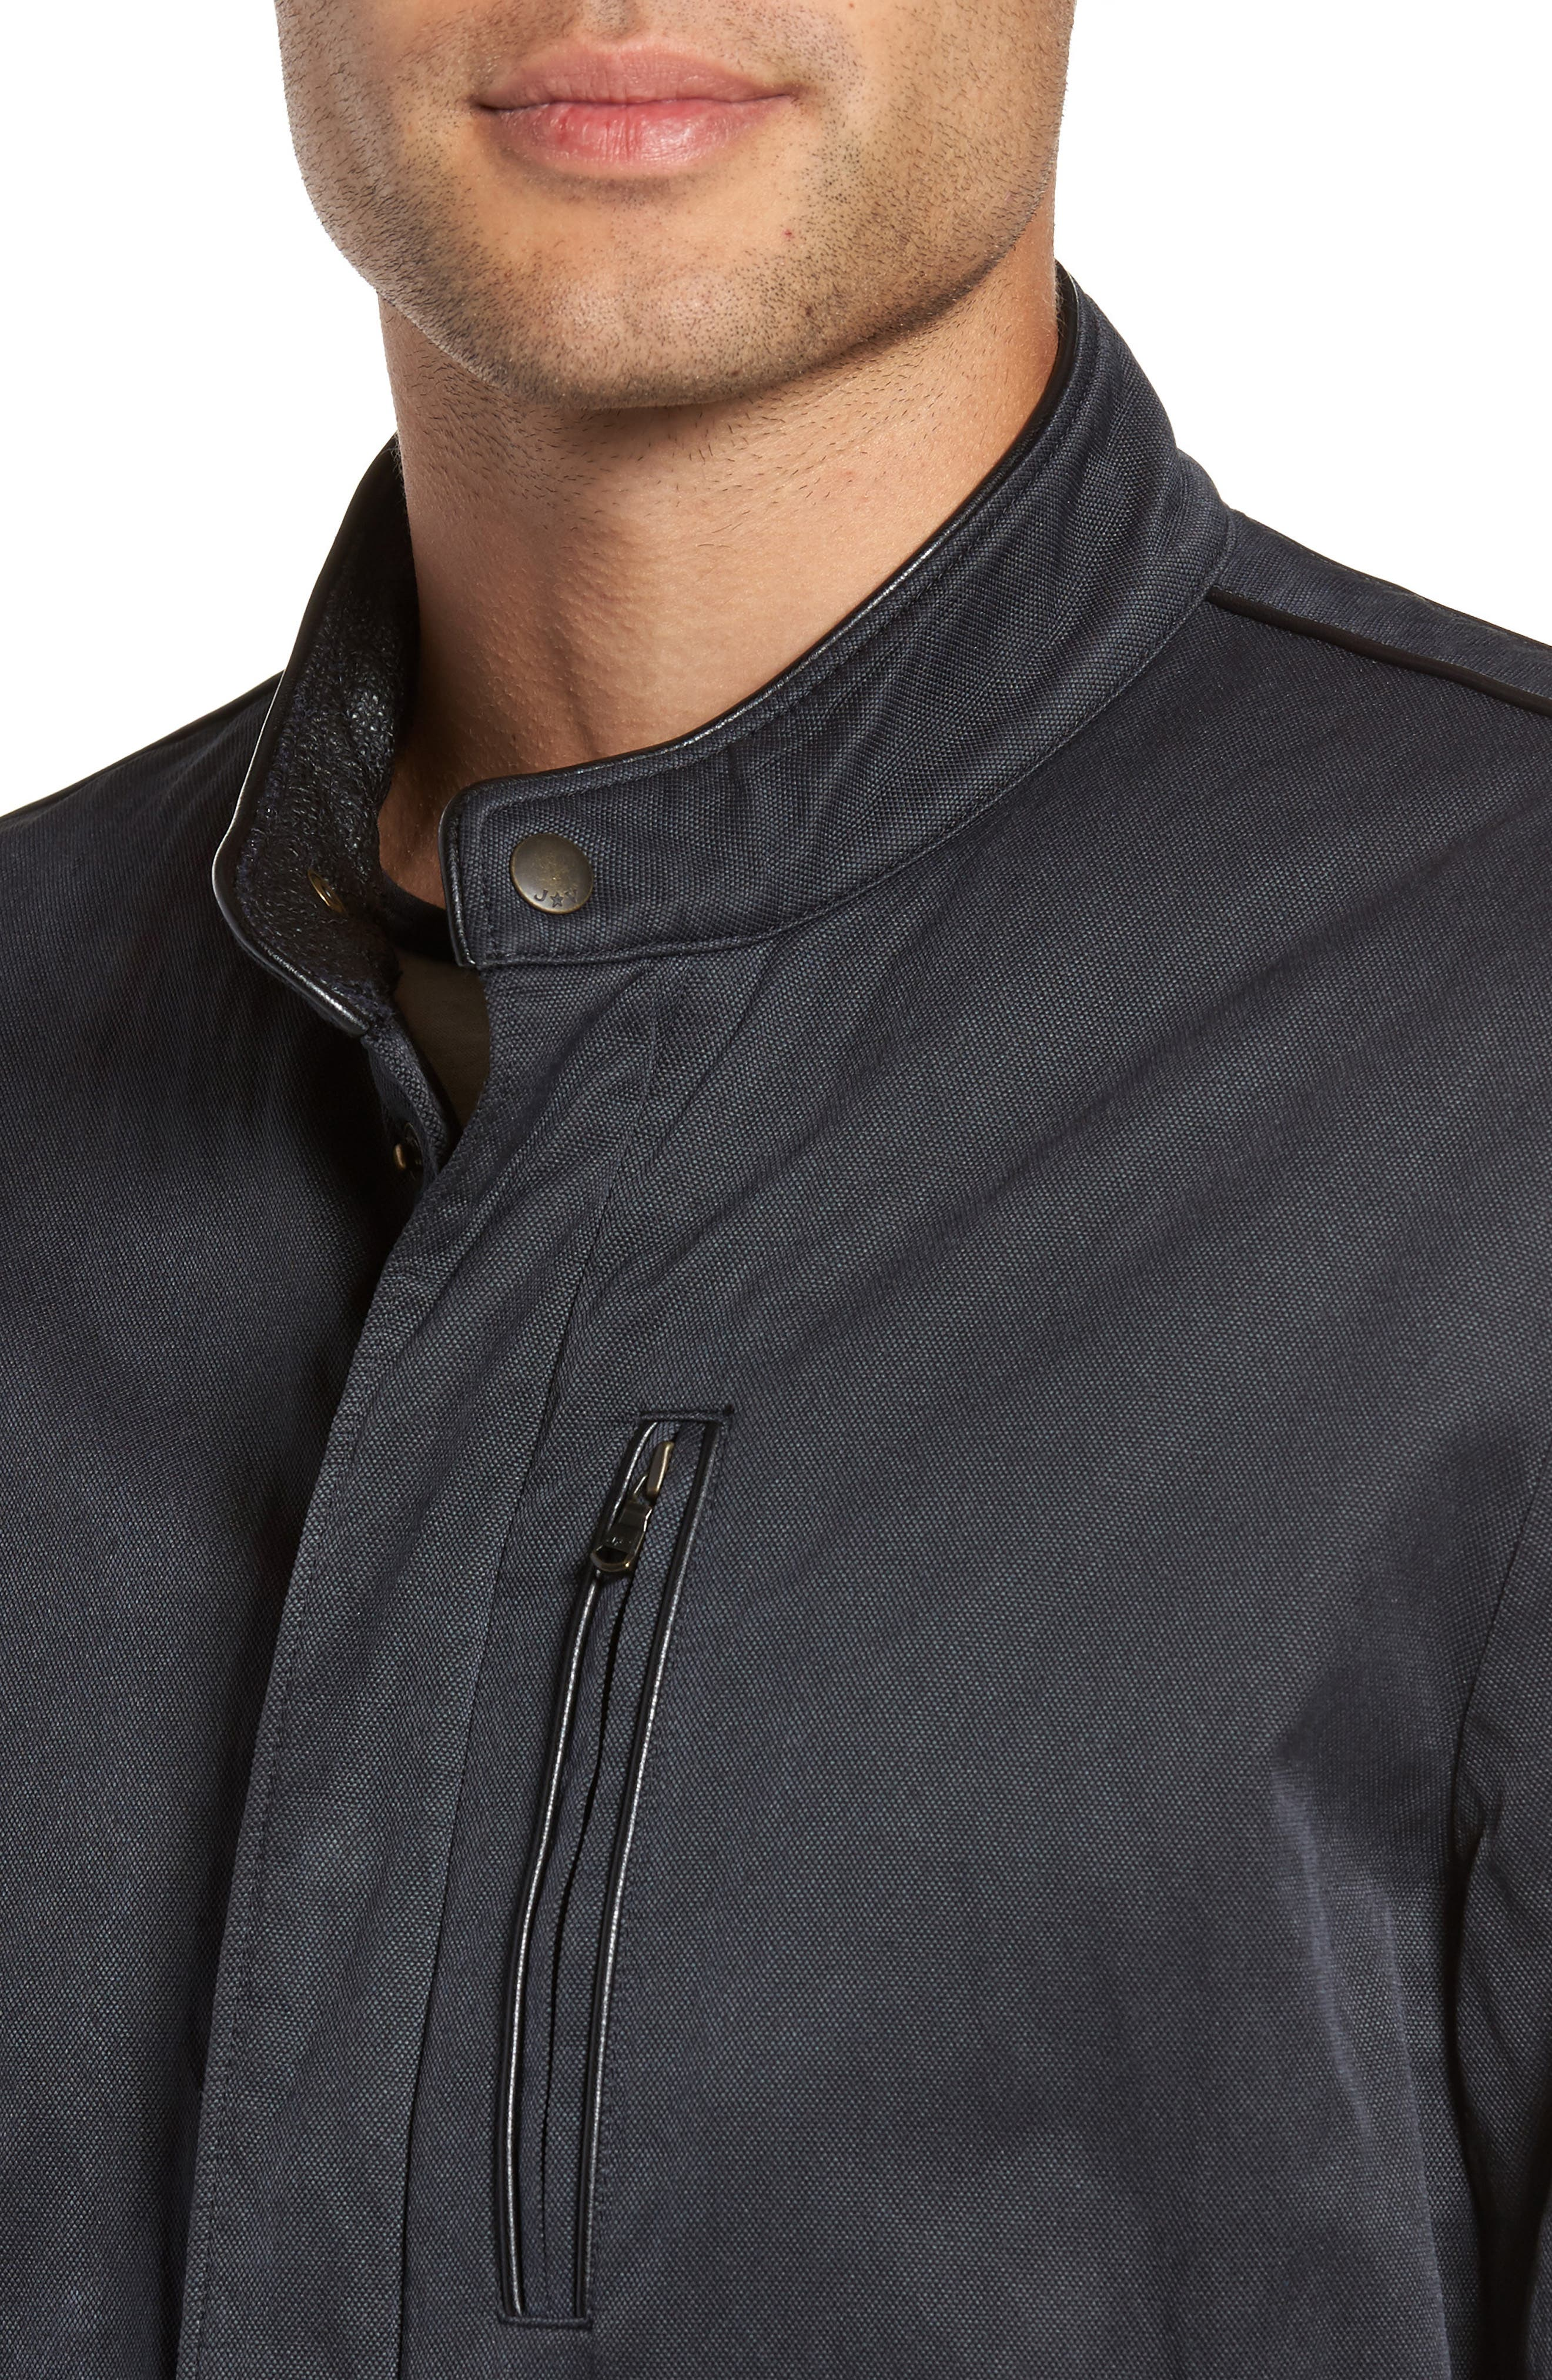 Band Collar Jacket,                             Alternate thumbnail 4, color,                             Midnight